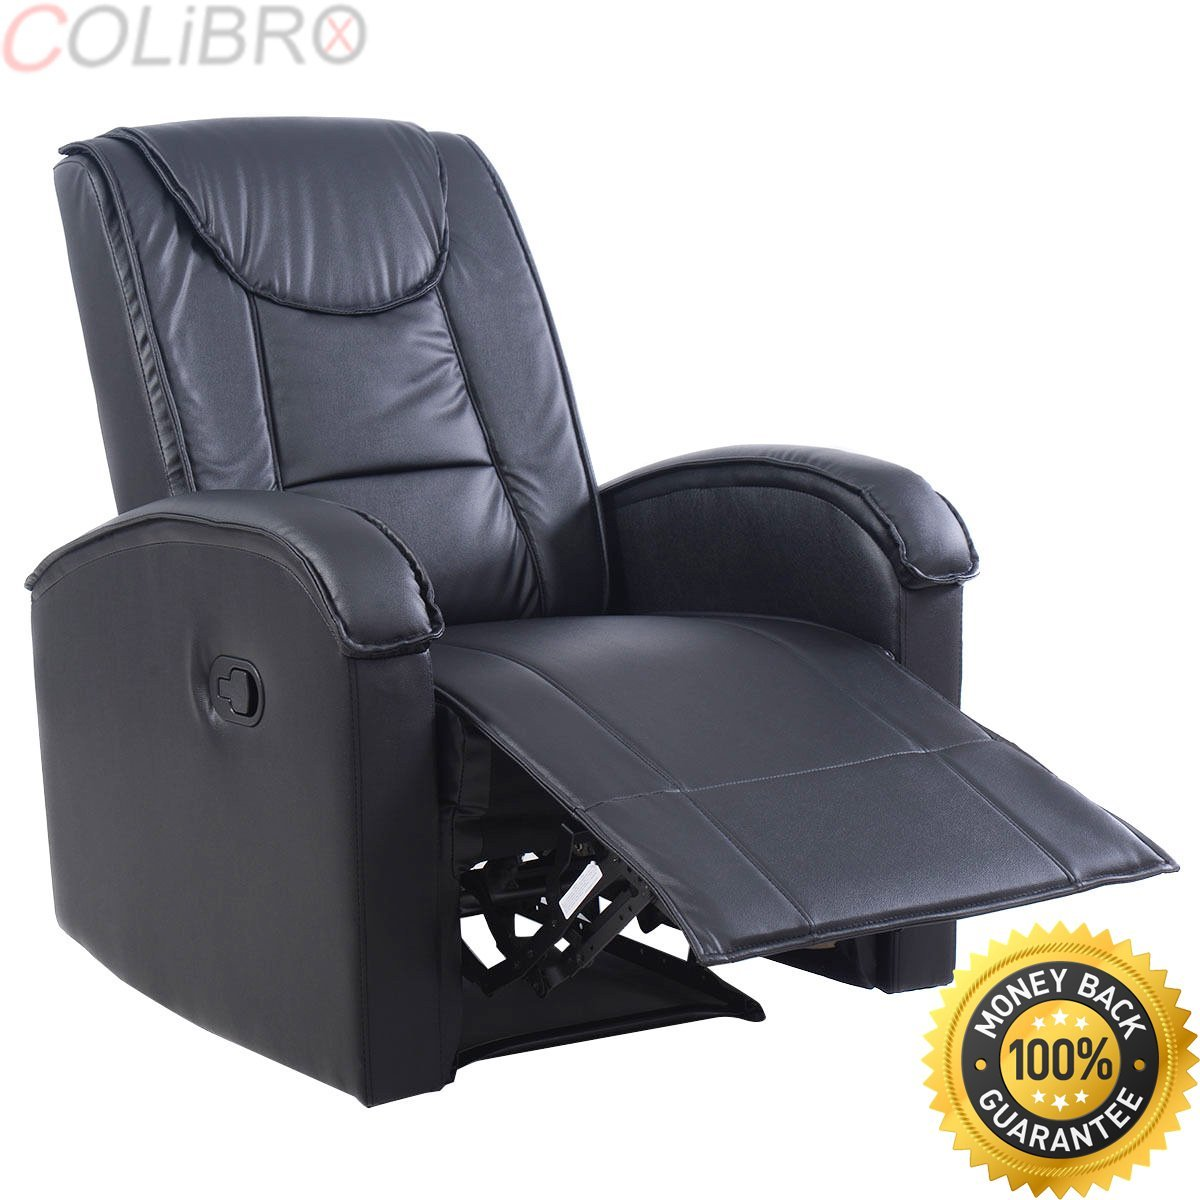 COLIBROX--Ergonomic Sofa Chair Recliner Lounge Deluxe PU Leather Home Furniture Black New.massage sofa chair.heated massage recliner.reclining sectional with massage and heat.recliner chair walmart.